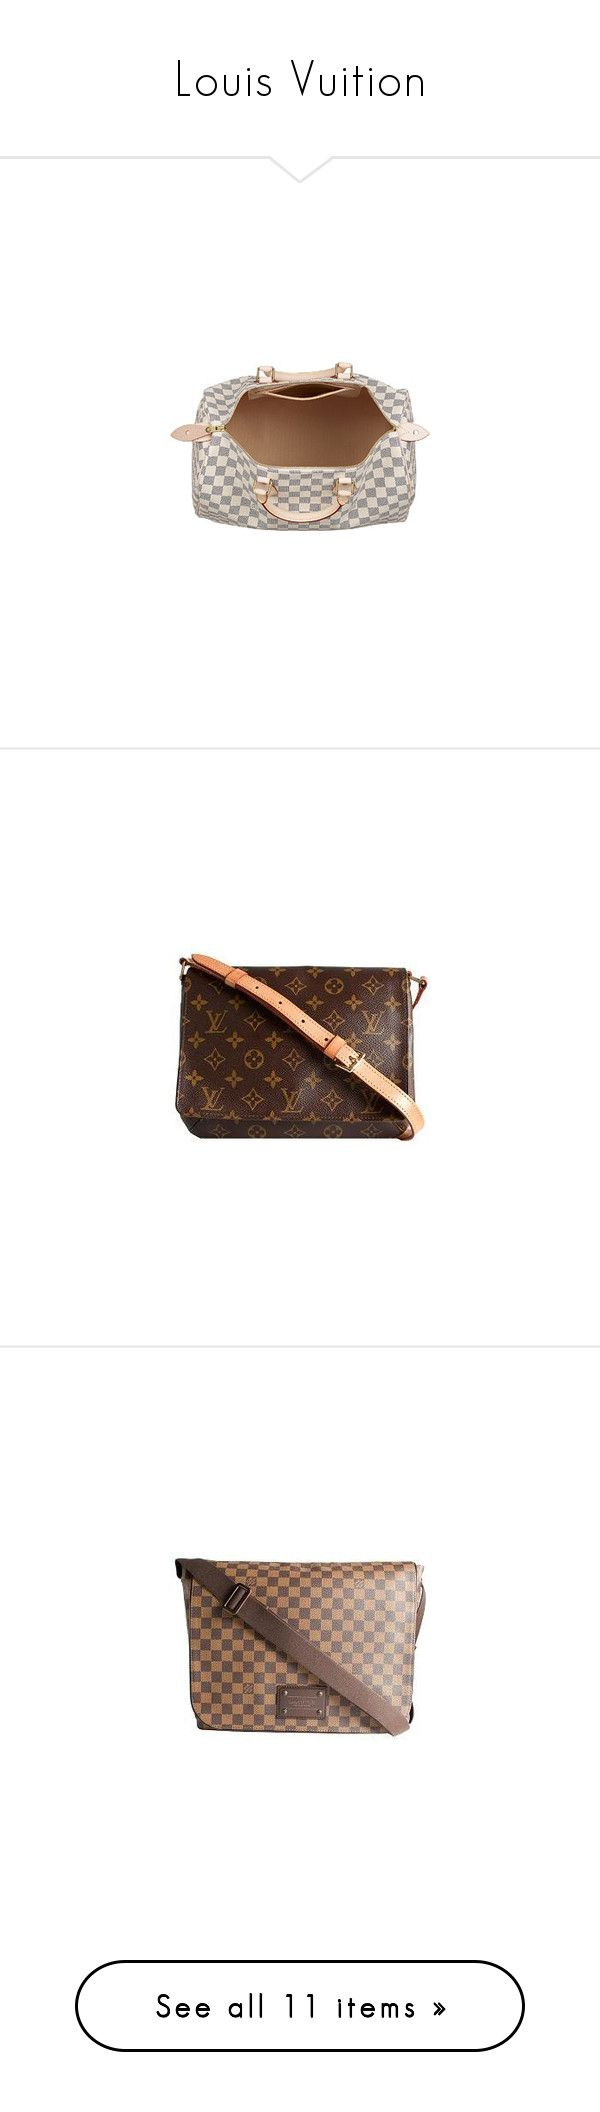 """Louis Vuition"" by shanplusthetice ❤ liked on Polyvore featuring bags, handbags, purses, louis vuitton, canvas handbags purses, canvas purses bags, brown bag, canvas man bag, purse bag and shoulder bags"